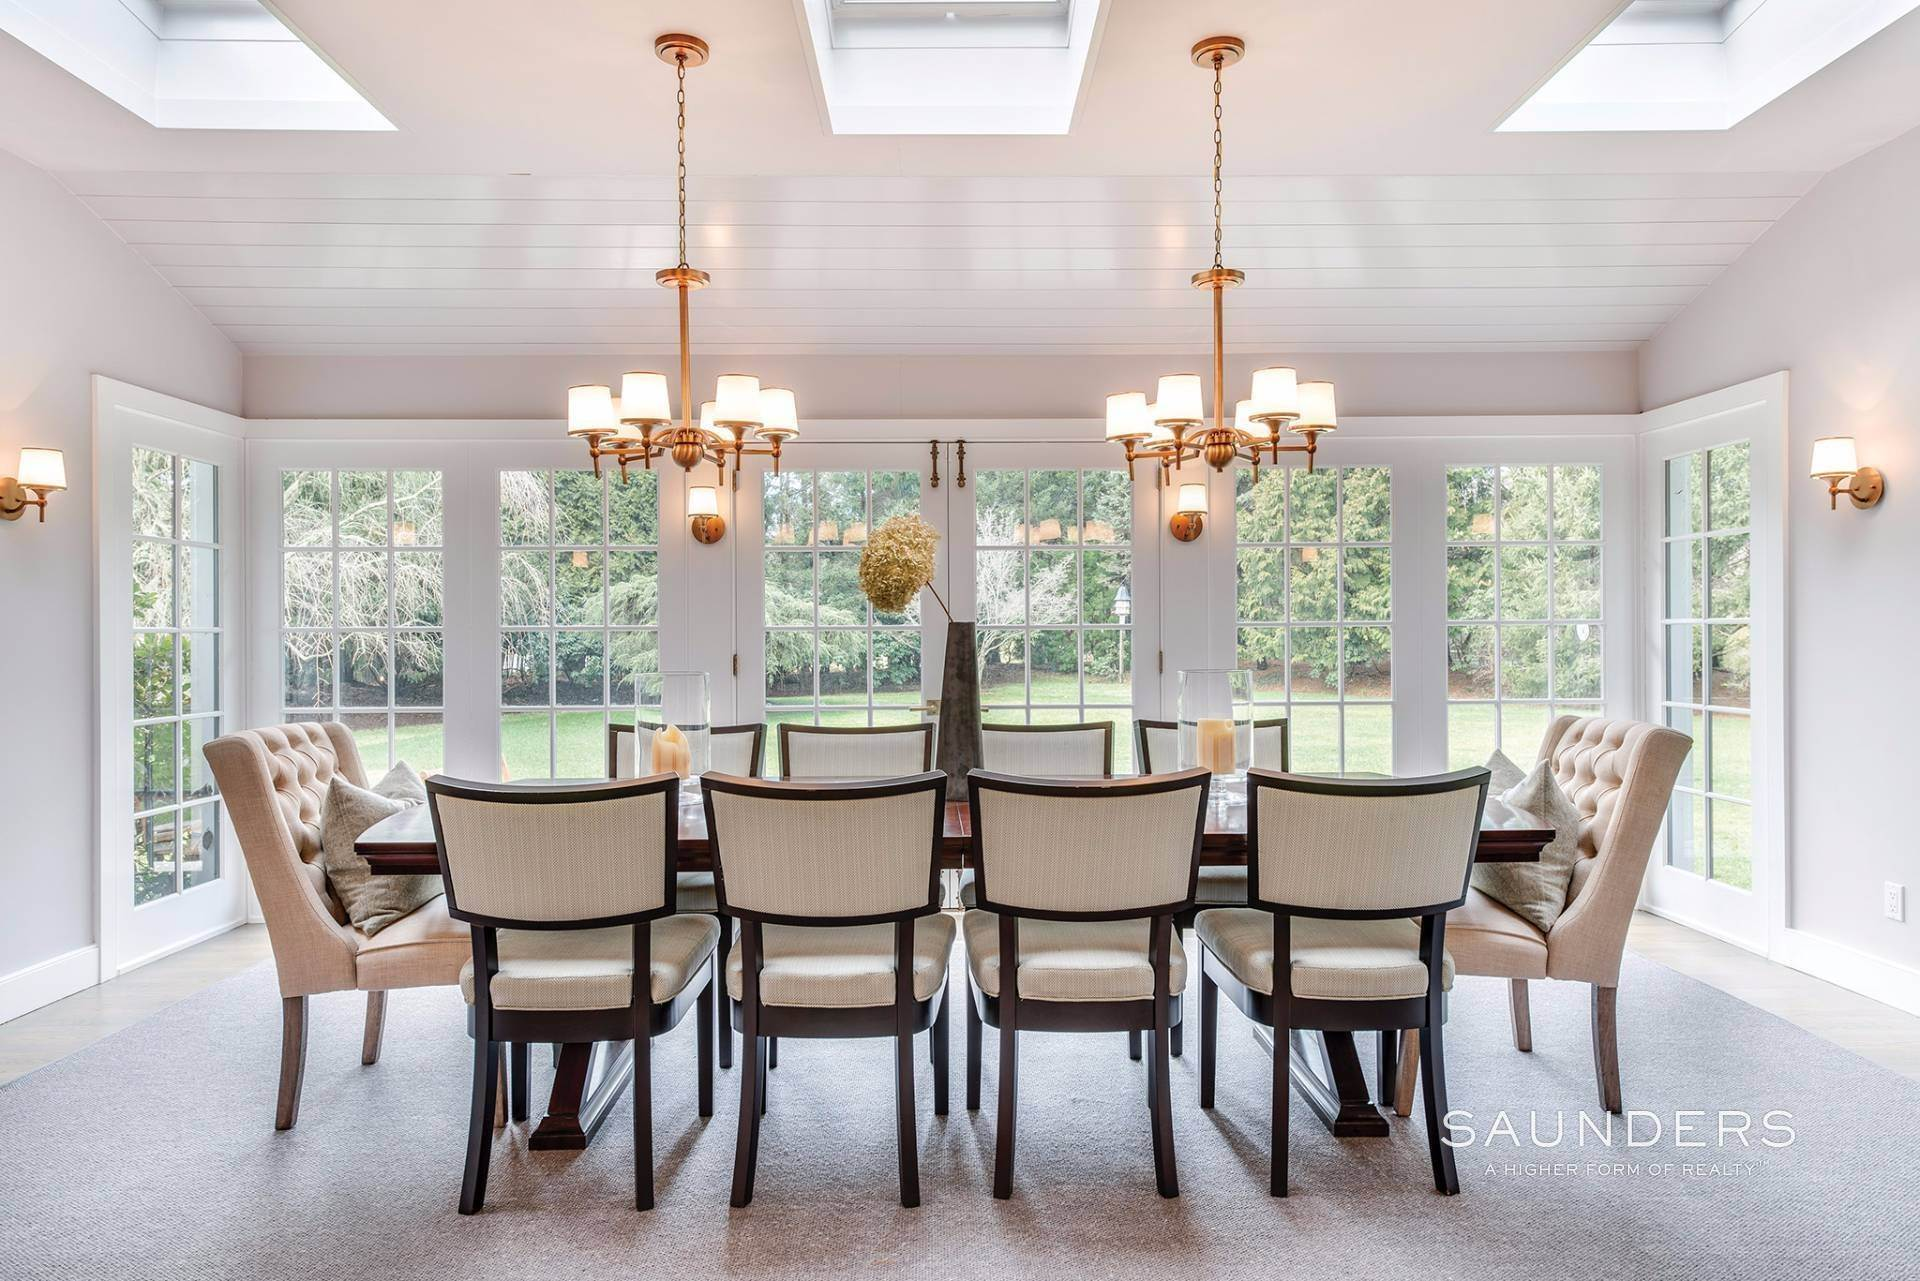 8. Single Family Homes for Sale at East Hampton Village 4 Carriage Court, East Hampton, East Hampton Town, NY 11937